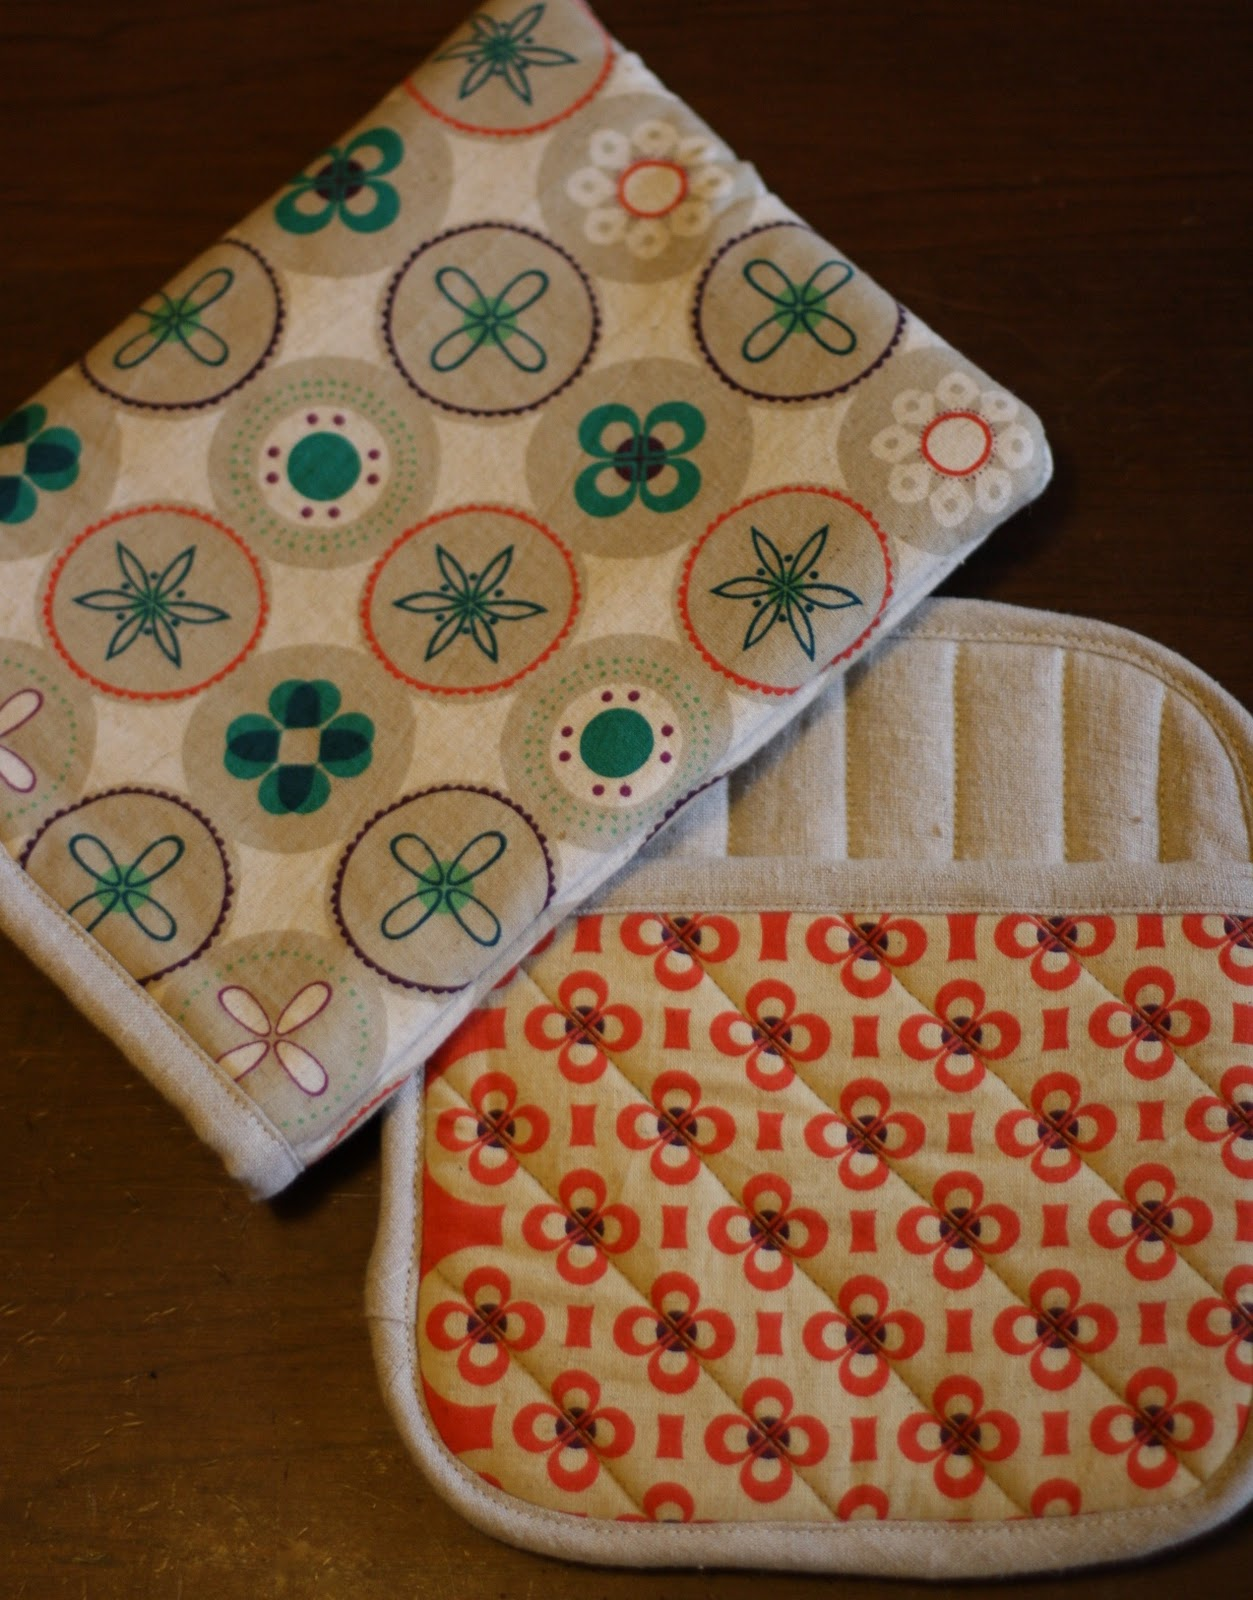 Kitchen Oven Mitts ~ Stitched together for the kitchen potholders and oven mitts